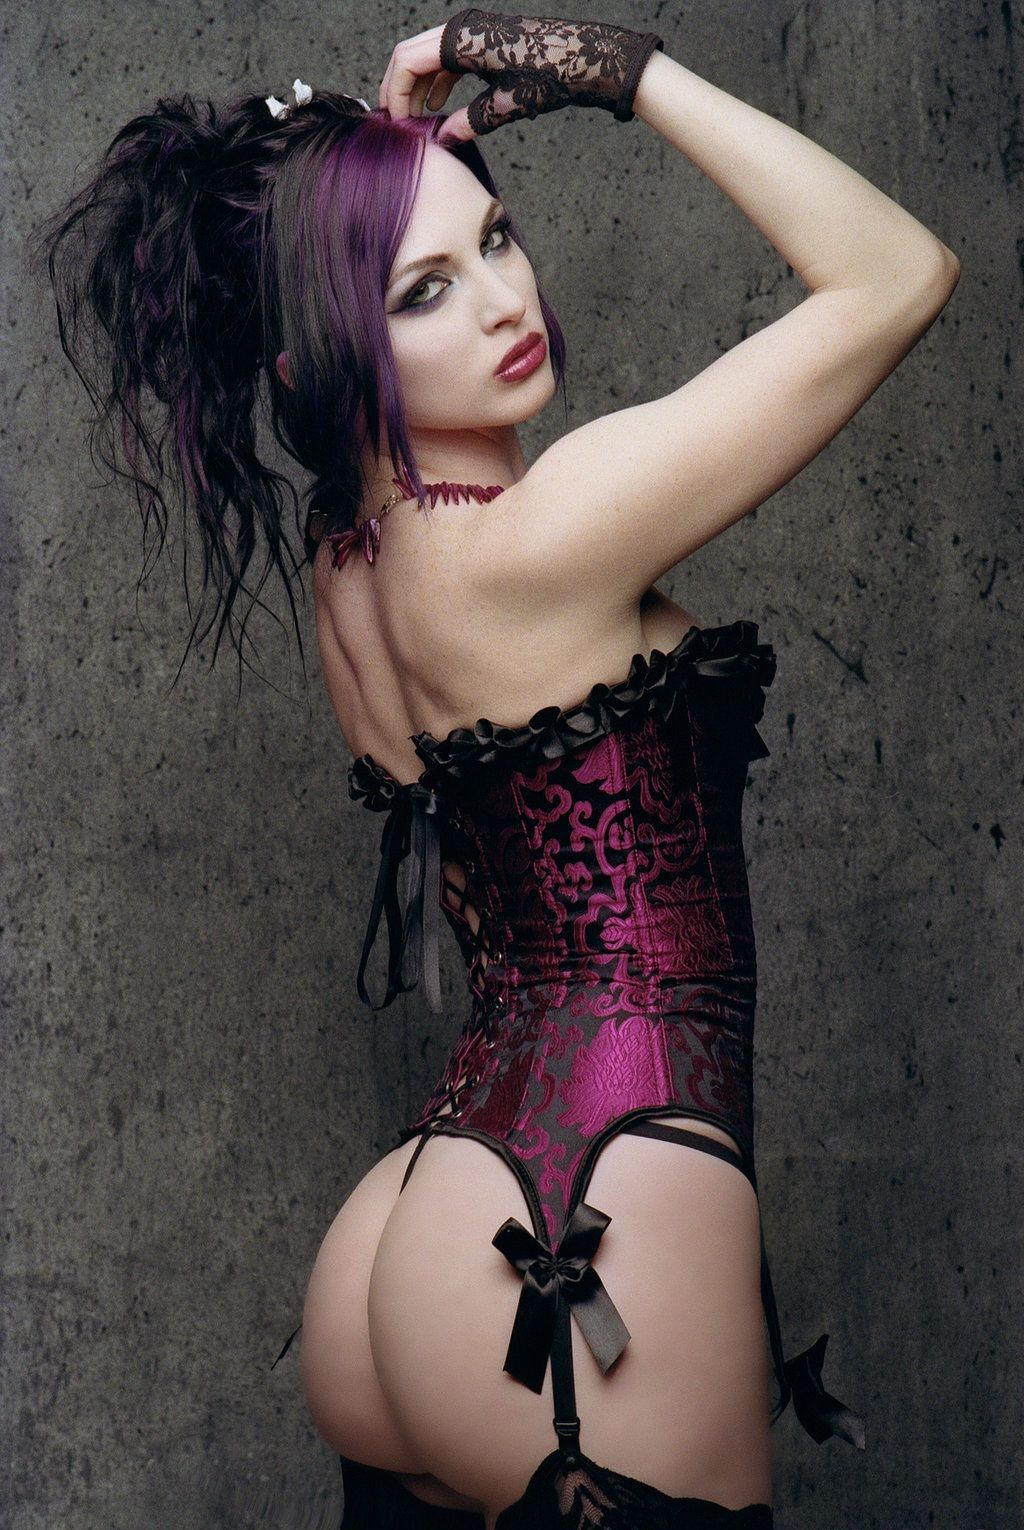 pictures of bad goth girls in panties